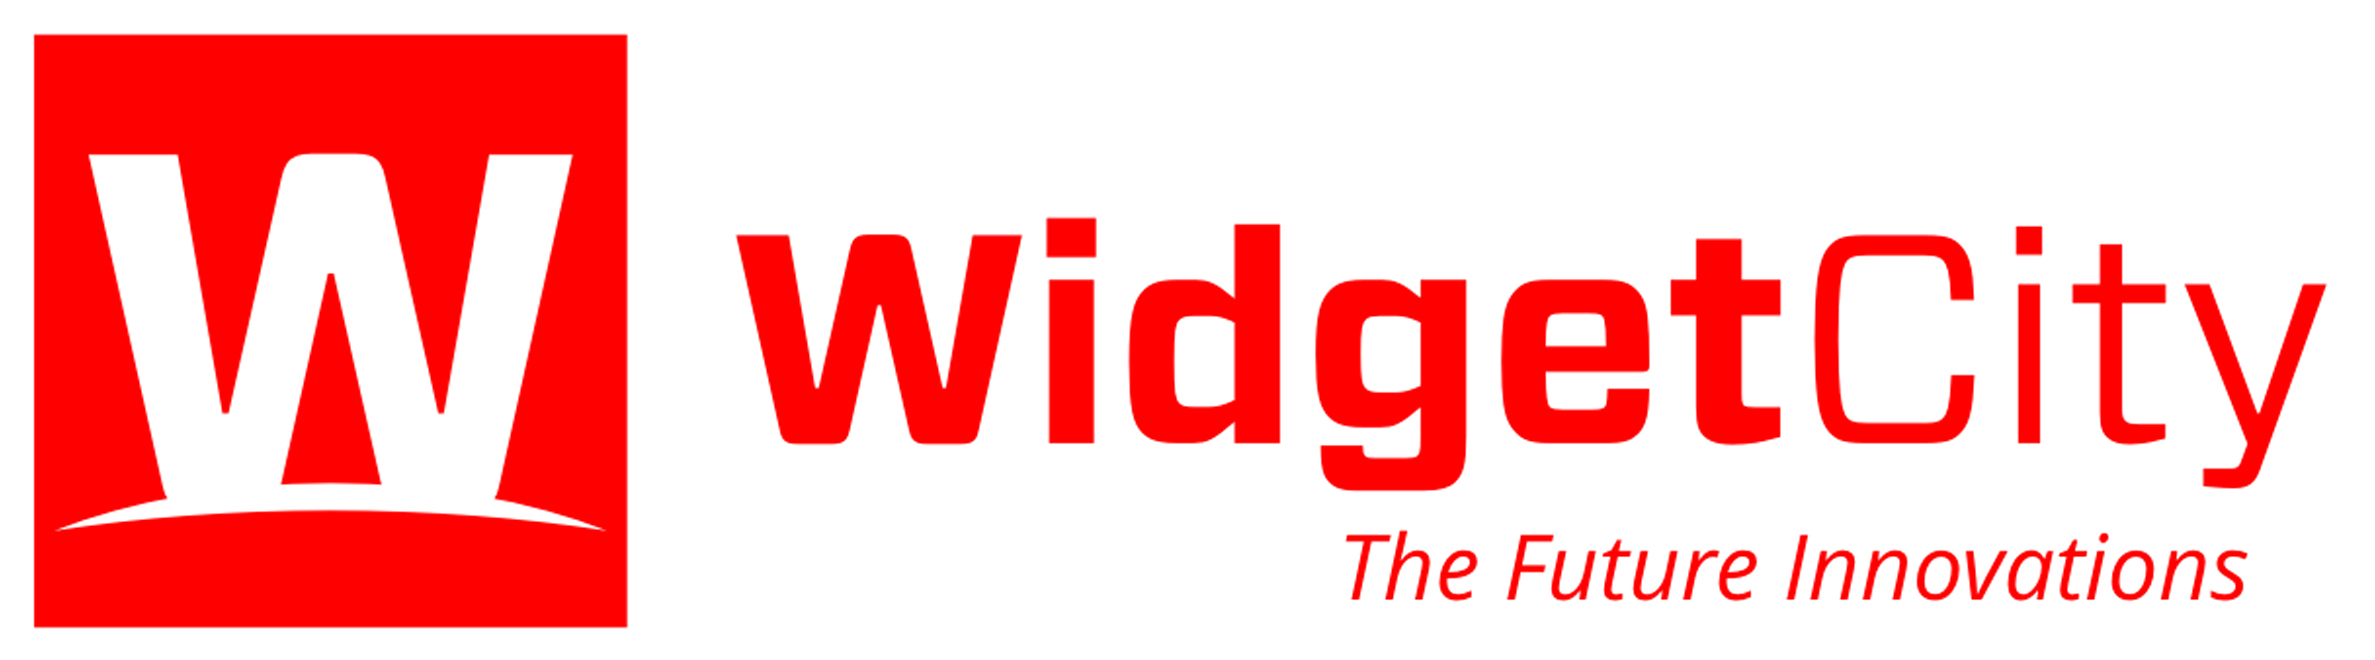 Widget City Gadgets inc